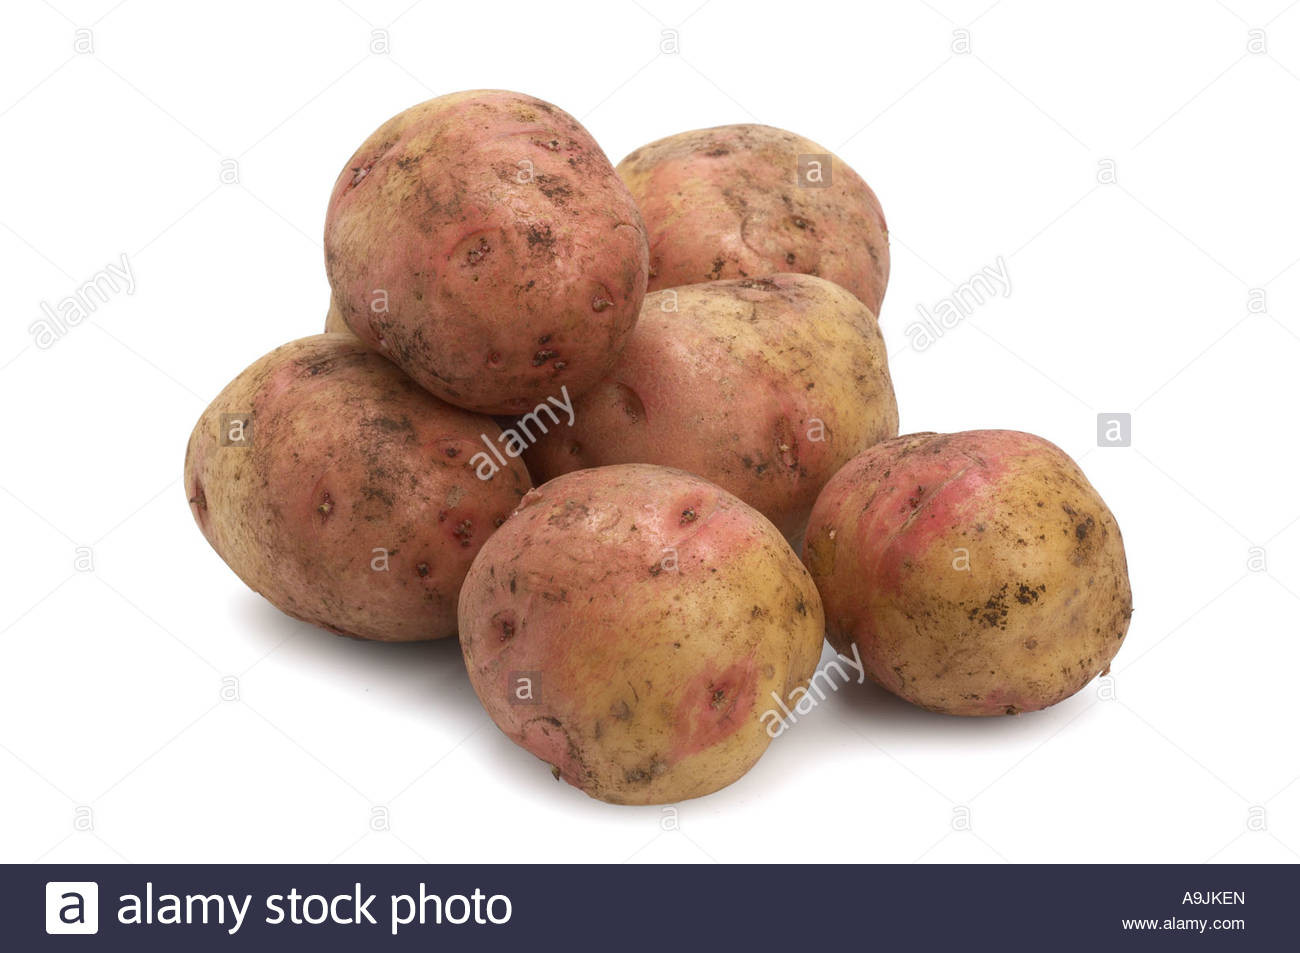 King Edward Potato  King Edward Potatoes Stock Royalty Free Image